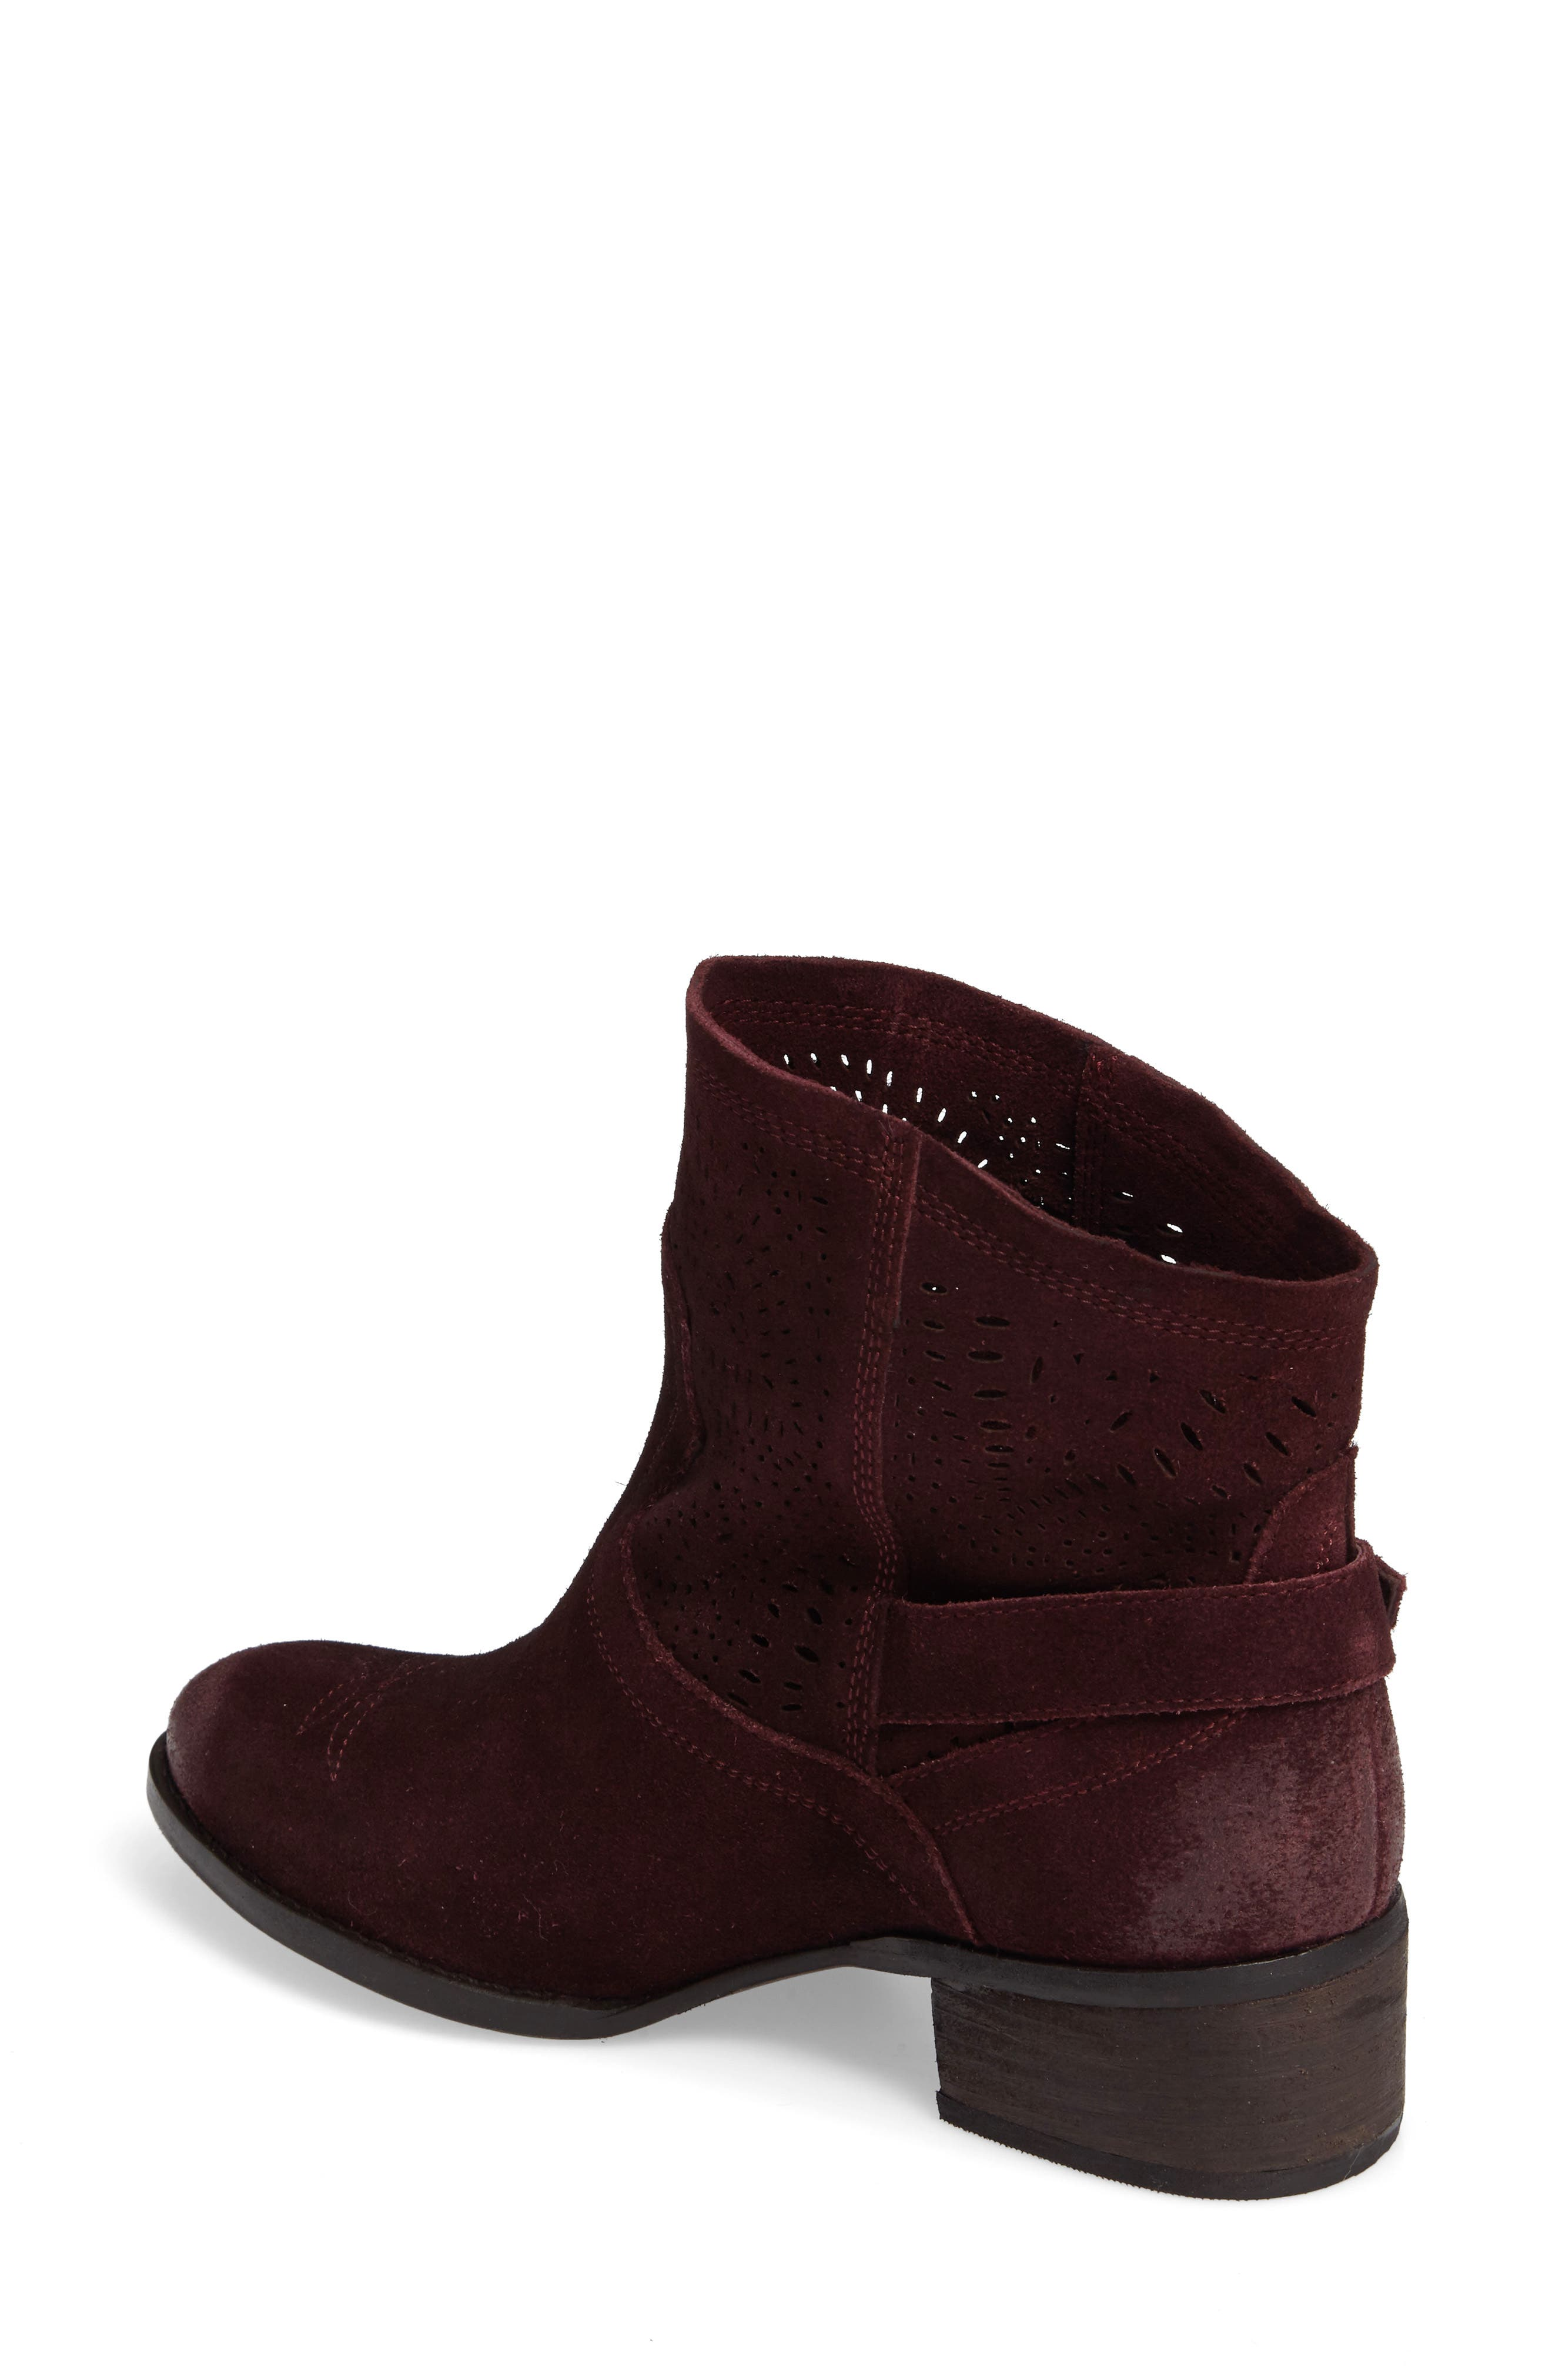 Zoey Perforated Bootie,                             Alternate thumbnail 8, color,